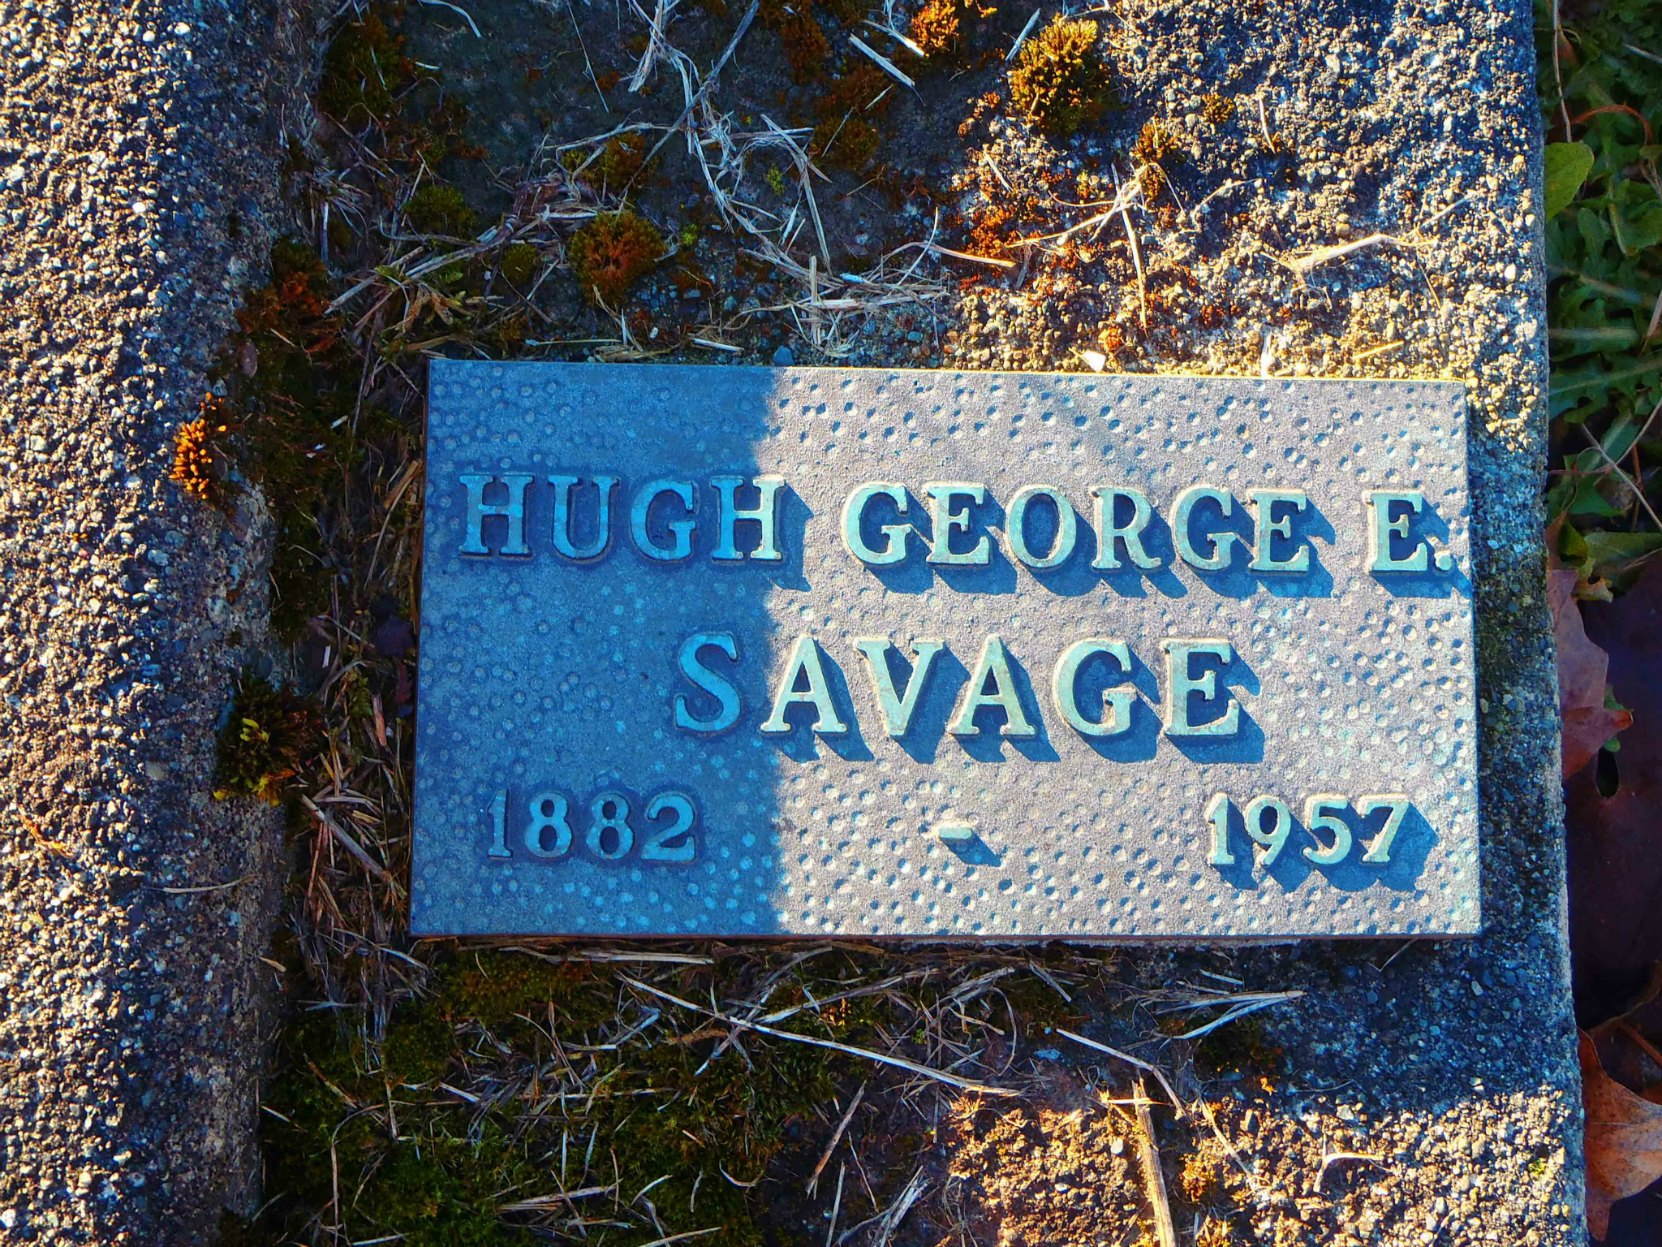 Hugh George Savage grave marker, St. Mary's Somenos Anglican cemetery